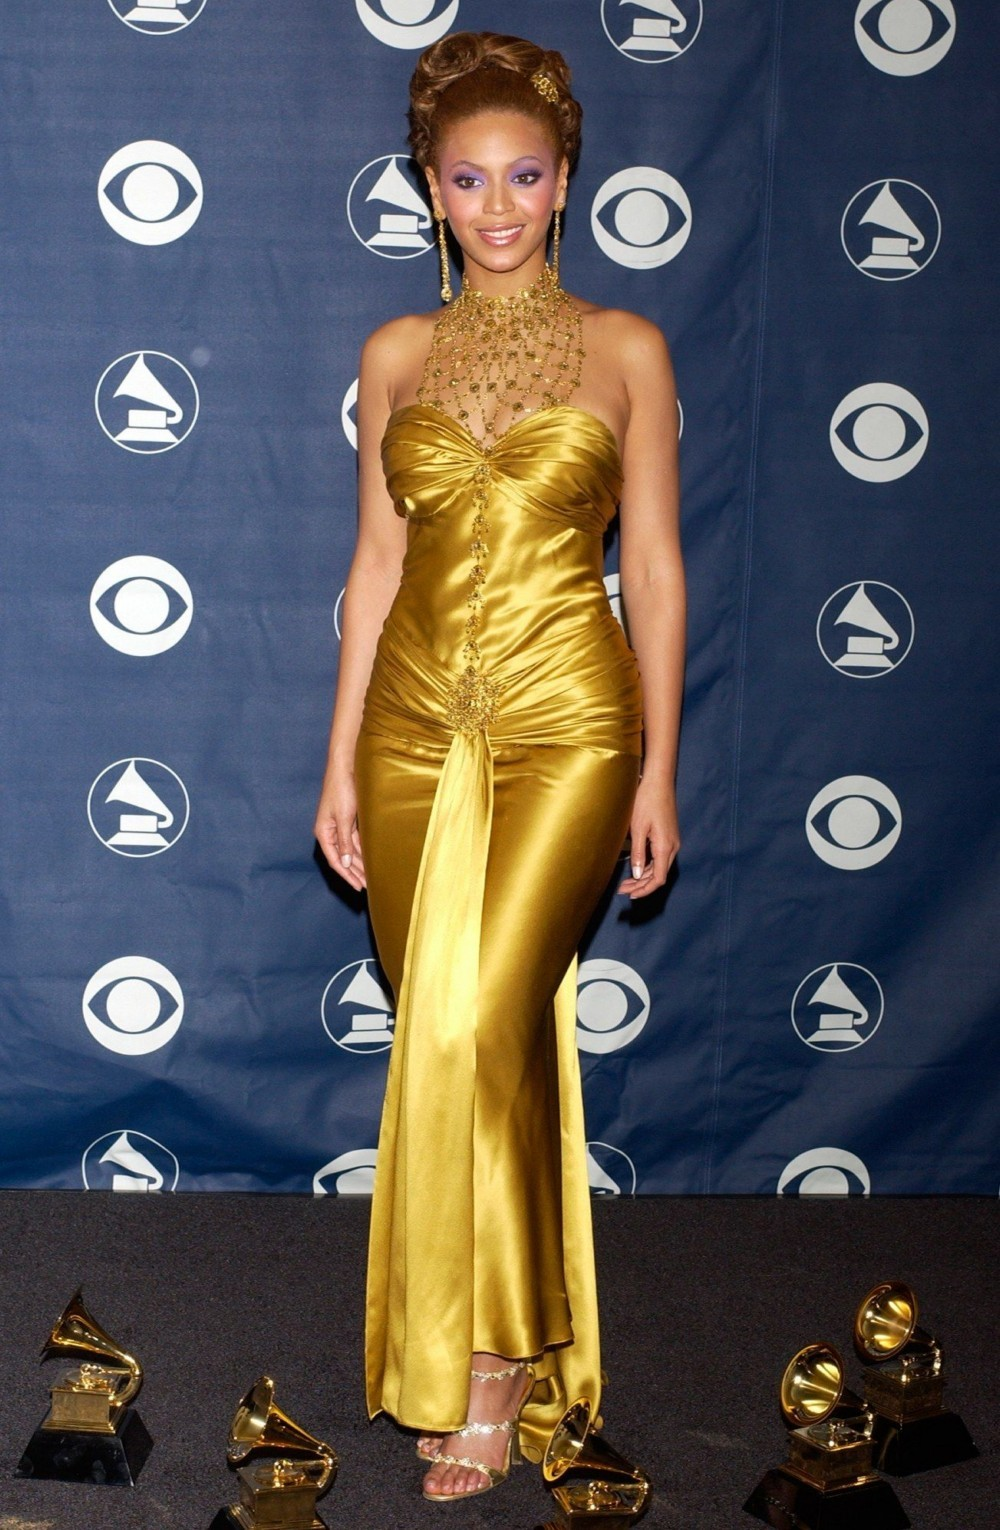 gold dress with bead accessories grammy awards 2004 the-evolution-of-beyonce's-style:-from-the-bootylicious-singer-to-the-homecoming-queen